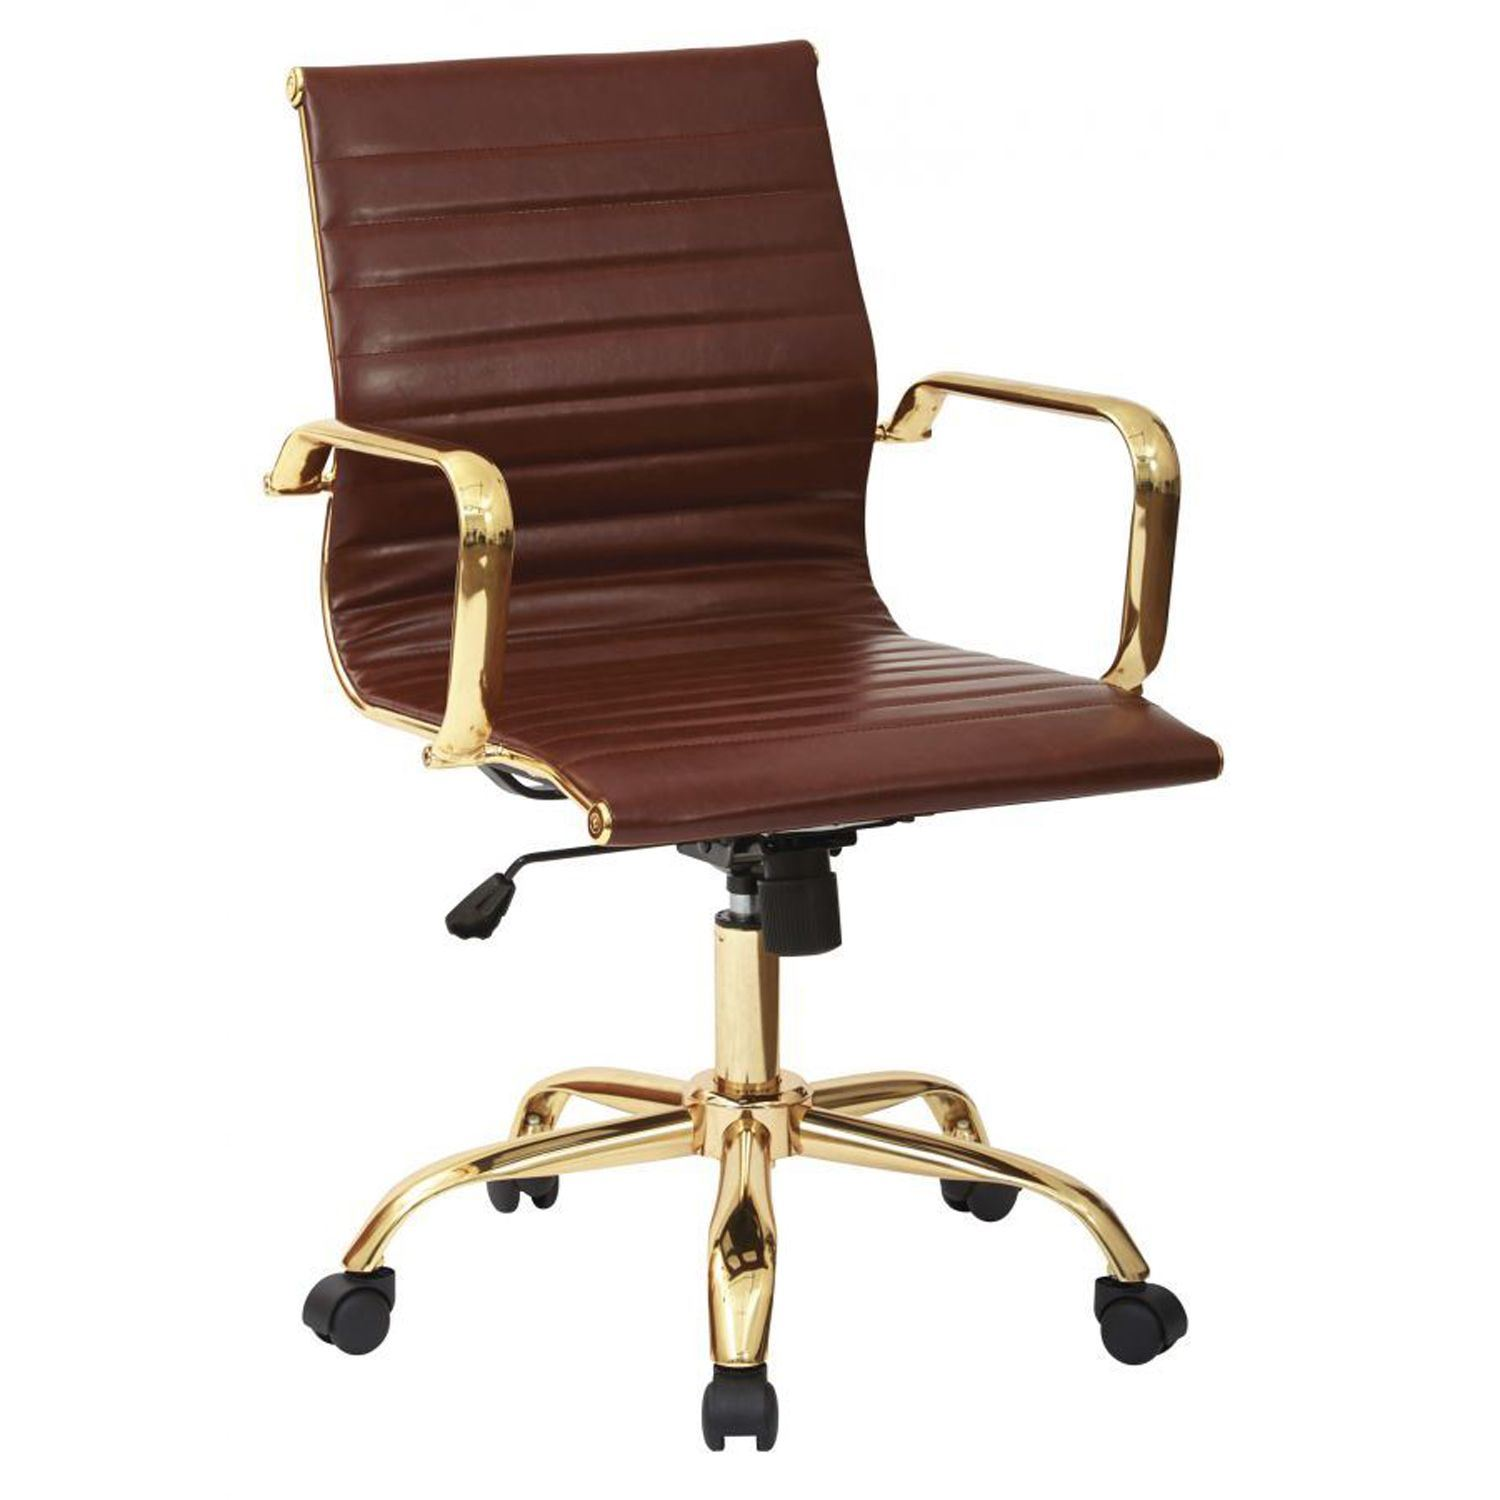 Saddle Office Chair Thick Padded Saddle Faux Leather Office Chair Fl3836g U41 Office